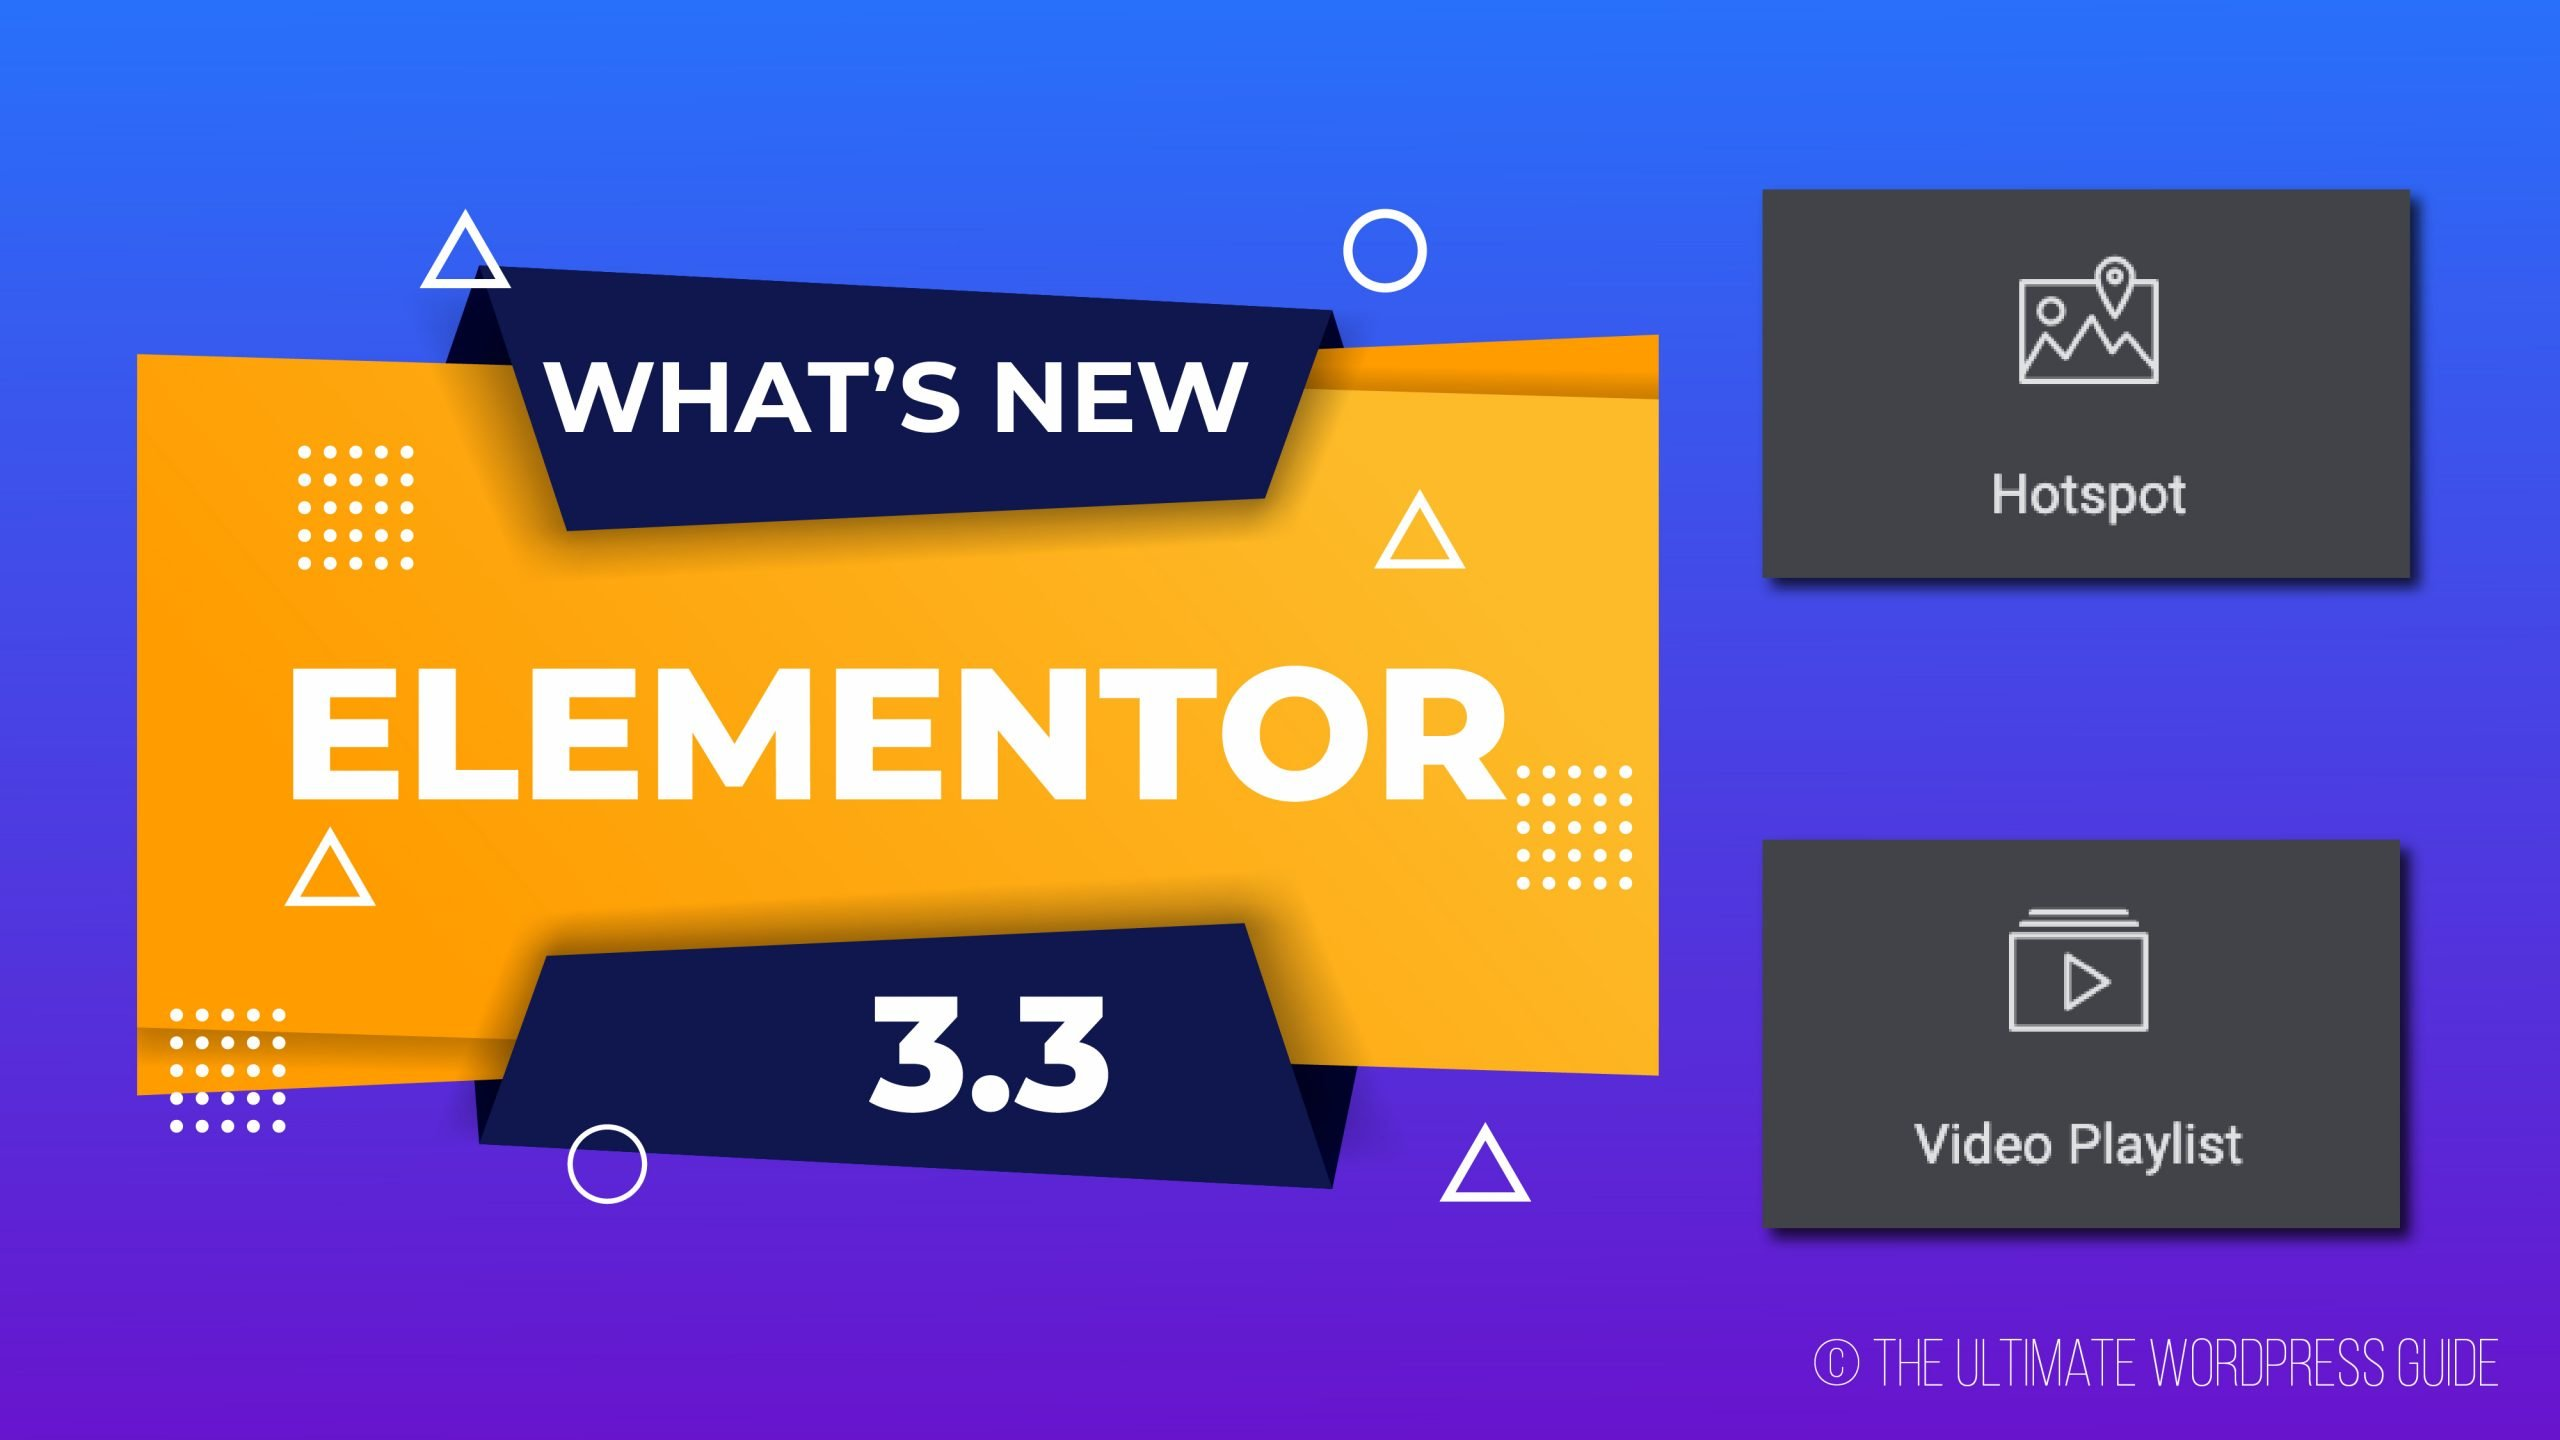 What's New is Elementor 3.3